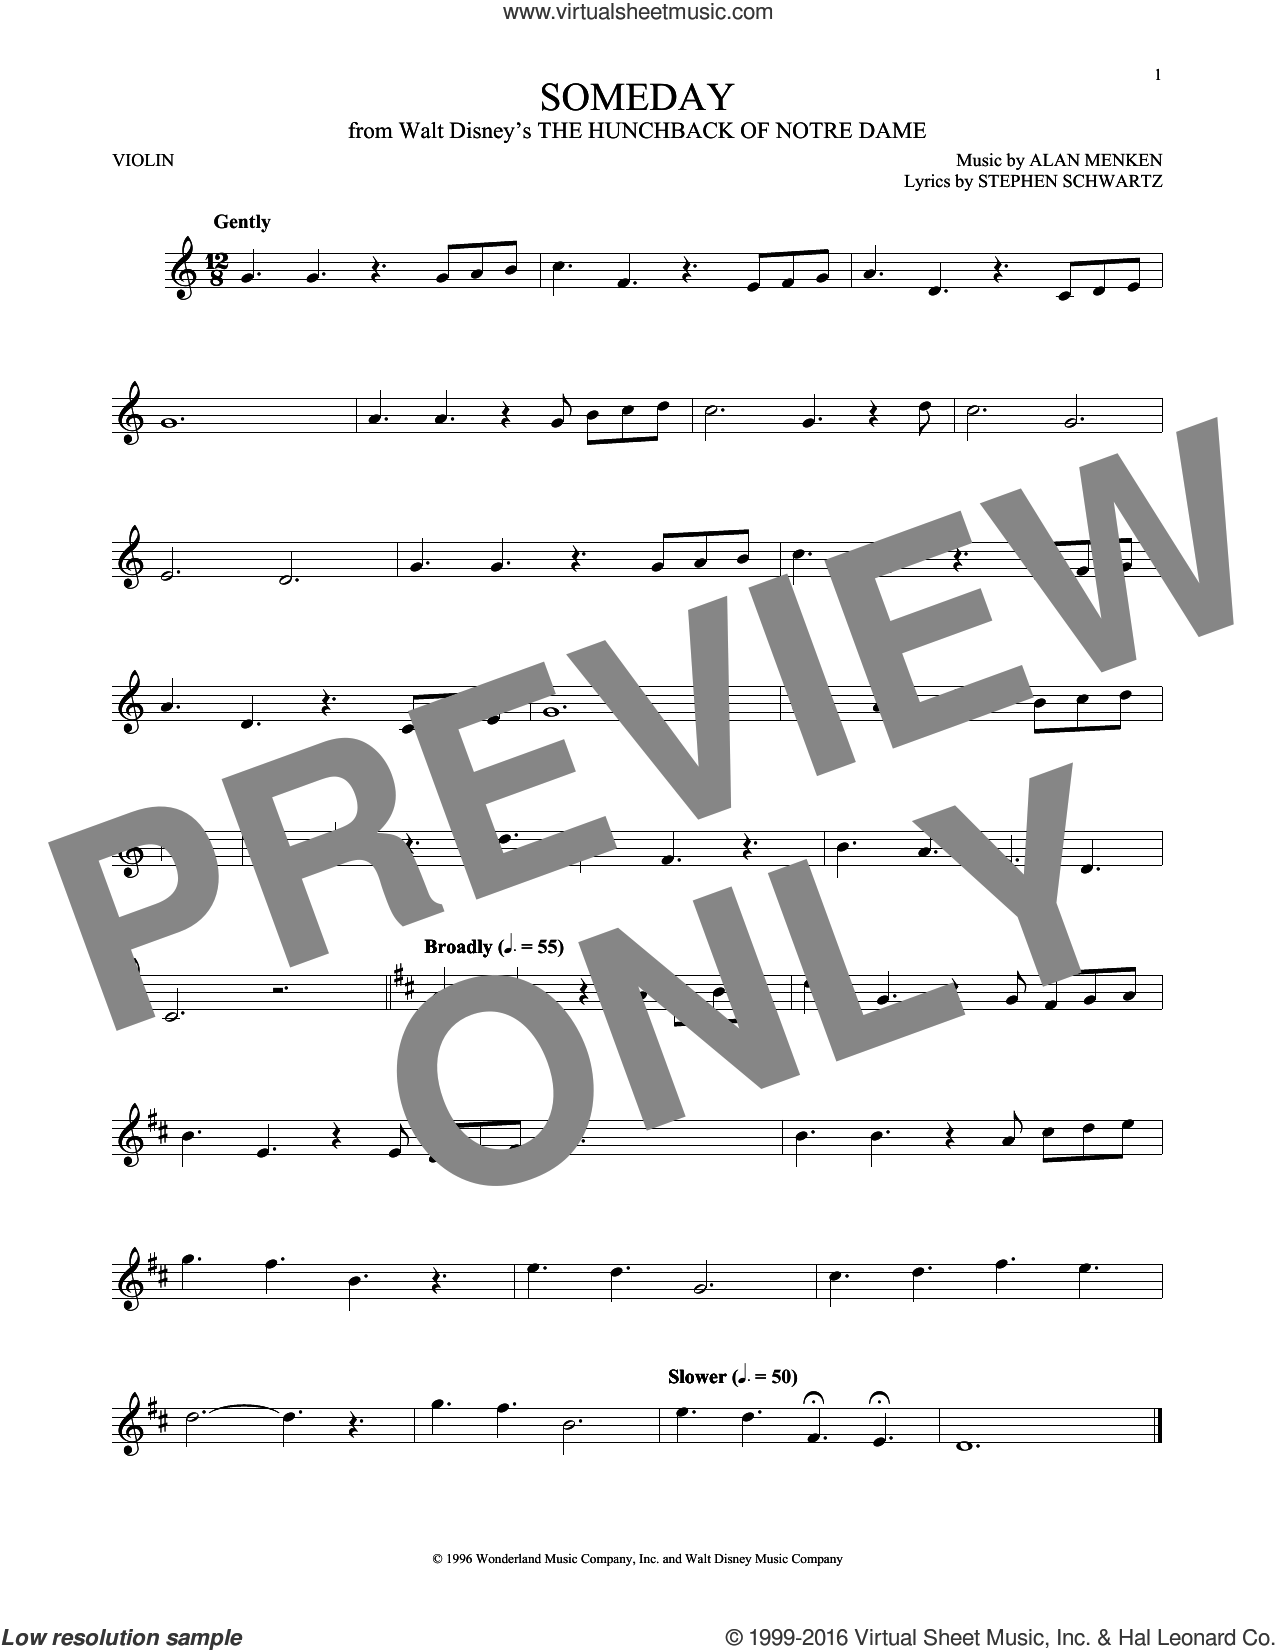 Someday (Esmeralda's Prayer) sheet music for violin solo by Alan Menken, Donna Summer and Stephen Schwartz, intermediate skill level